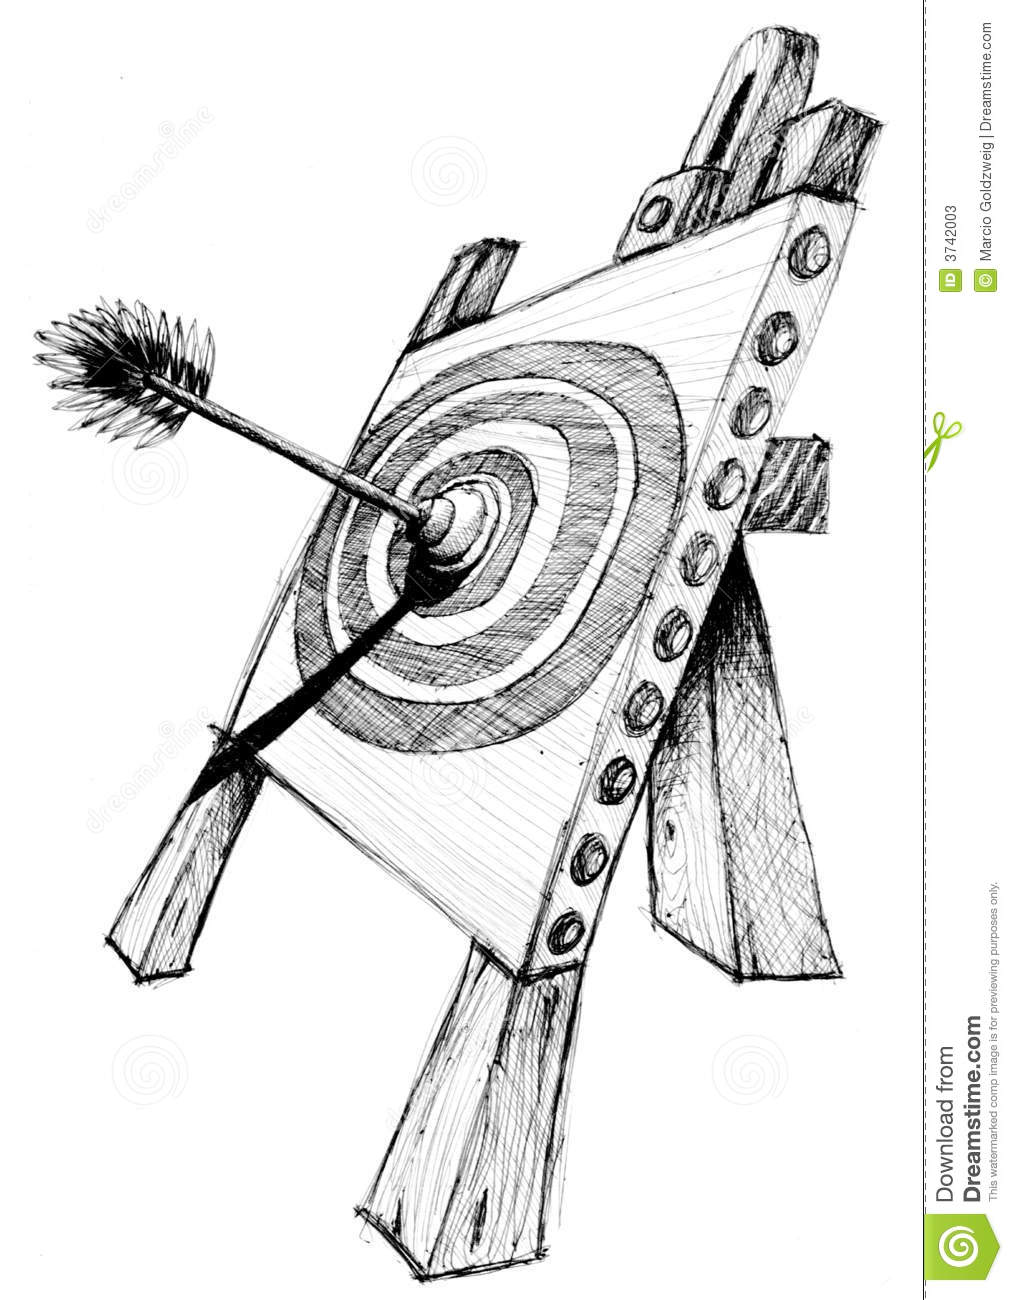 Pencil drawing for a kids arrow target